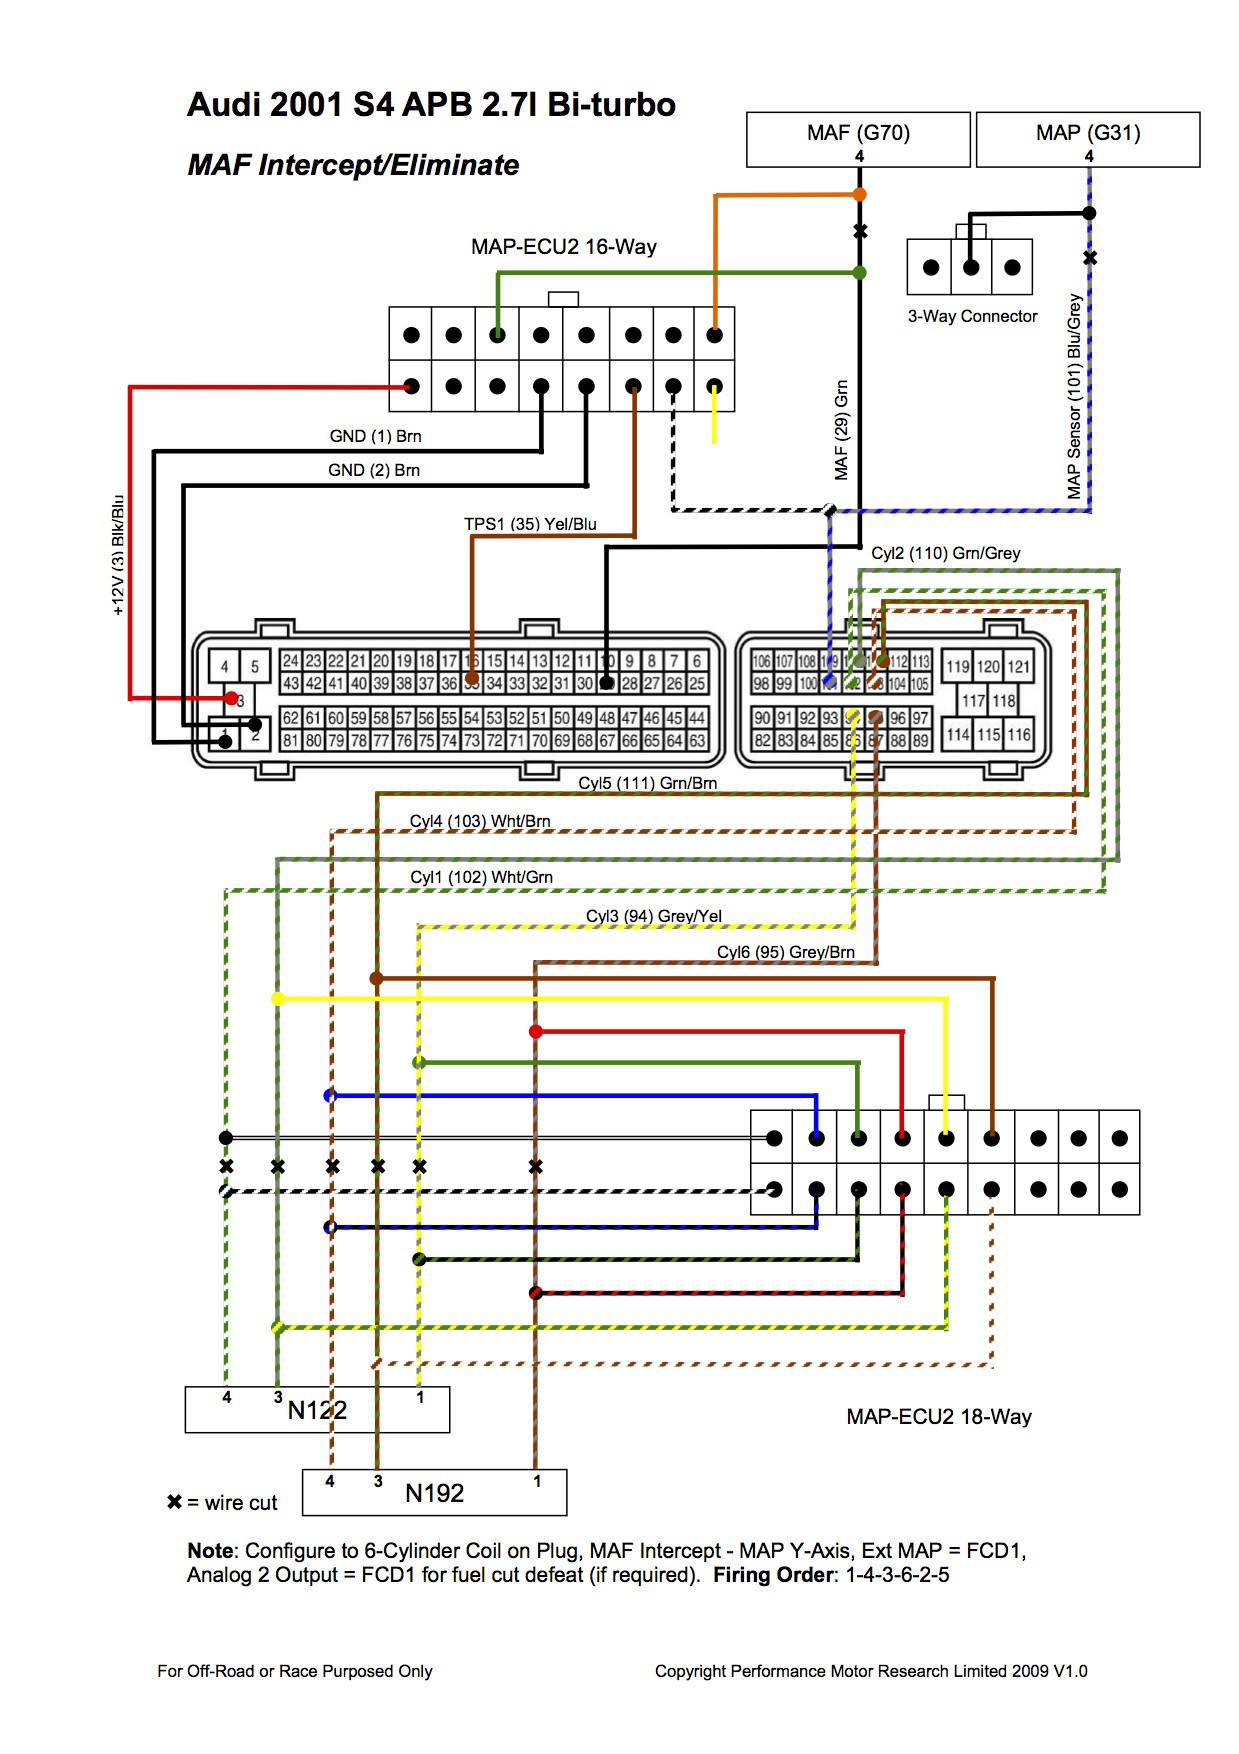 1998 toyota camry stereo wiring diagram - car wiring diagram circuit-dish -  circuit-dish.vinmarsrl.it  diagram database